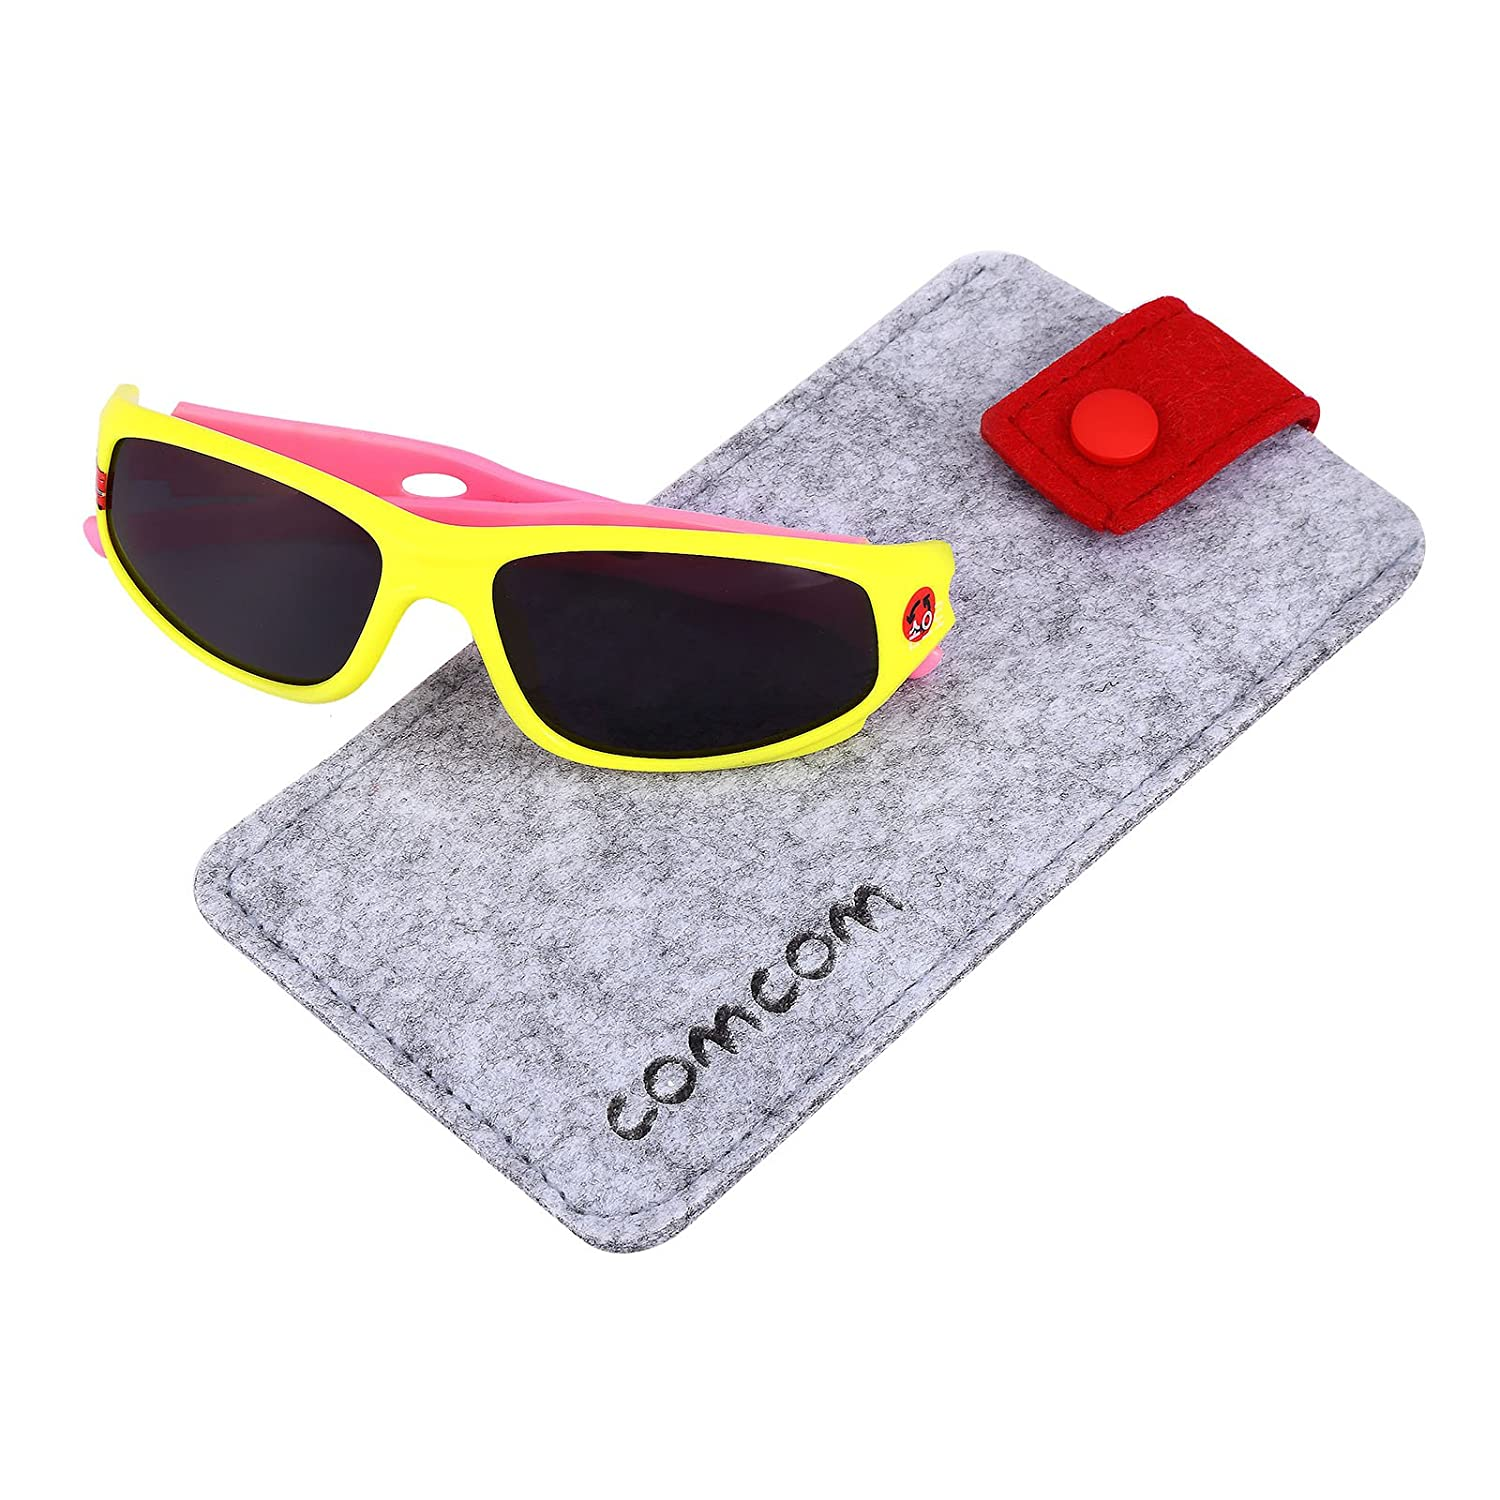 Kids Sports Style Polarized Sunglasses Rubber Flexible Frame For Boys And Girls Age 3-10